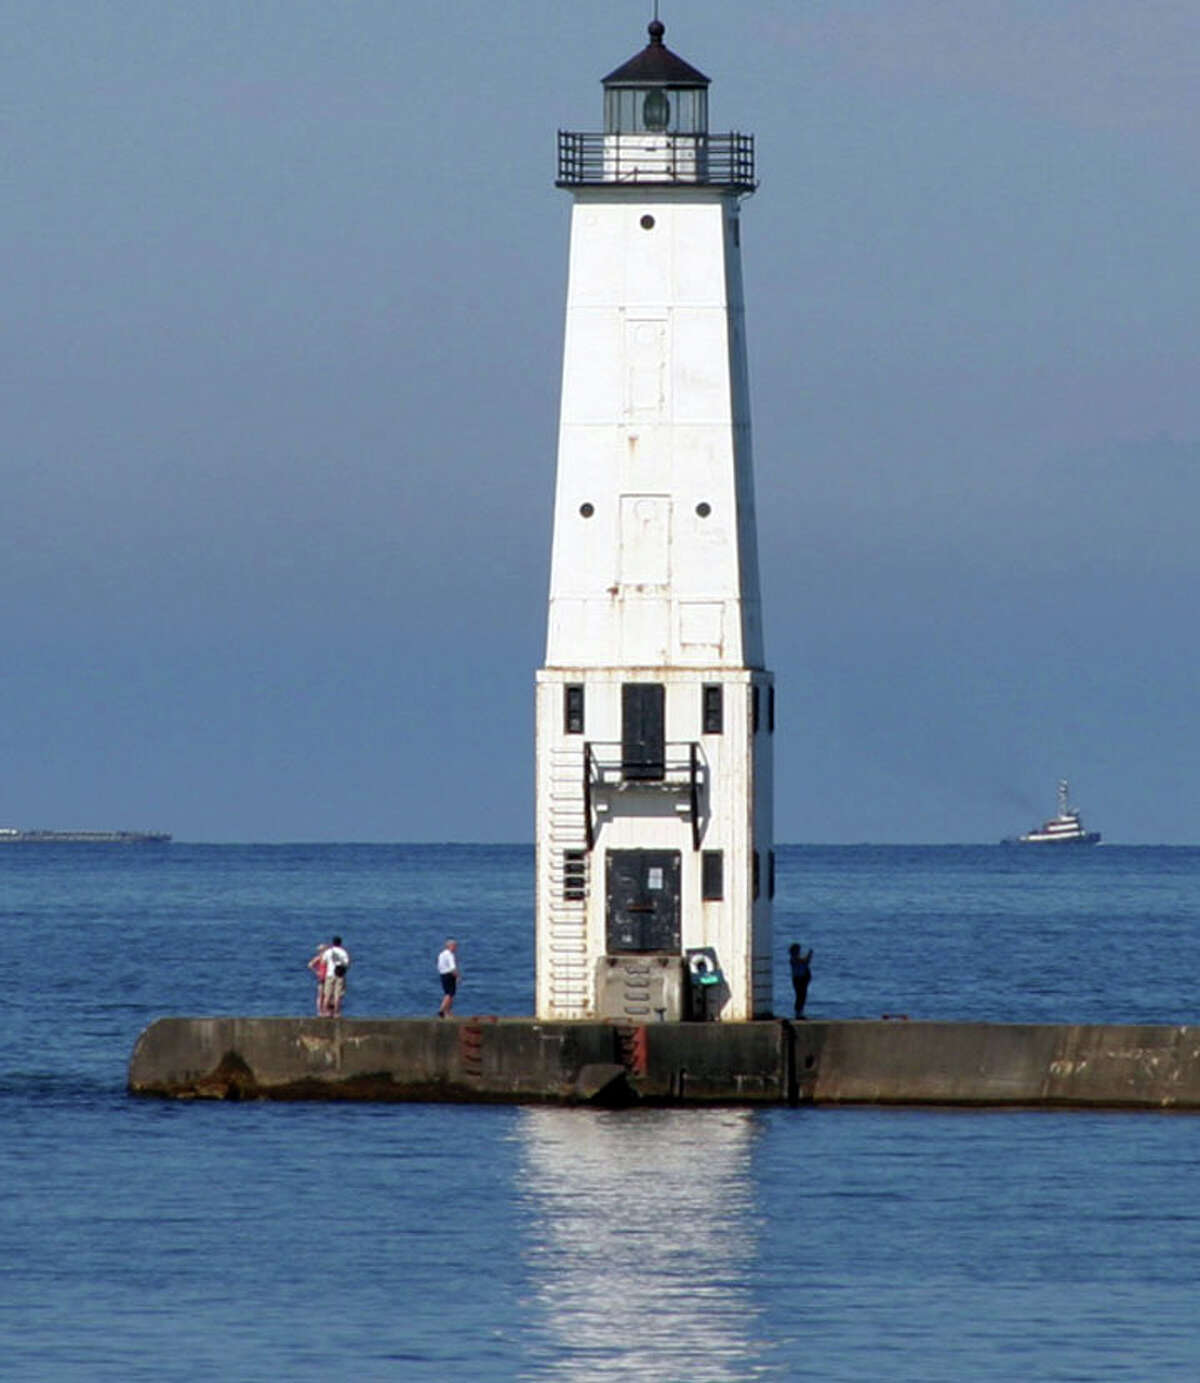 The City of Frankfort is raising funds to renovate its iconic lighthouse.